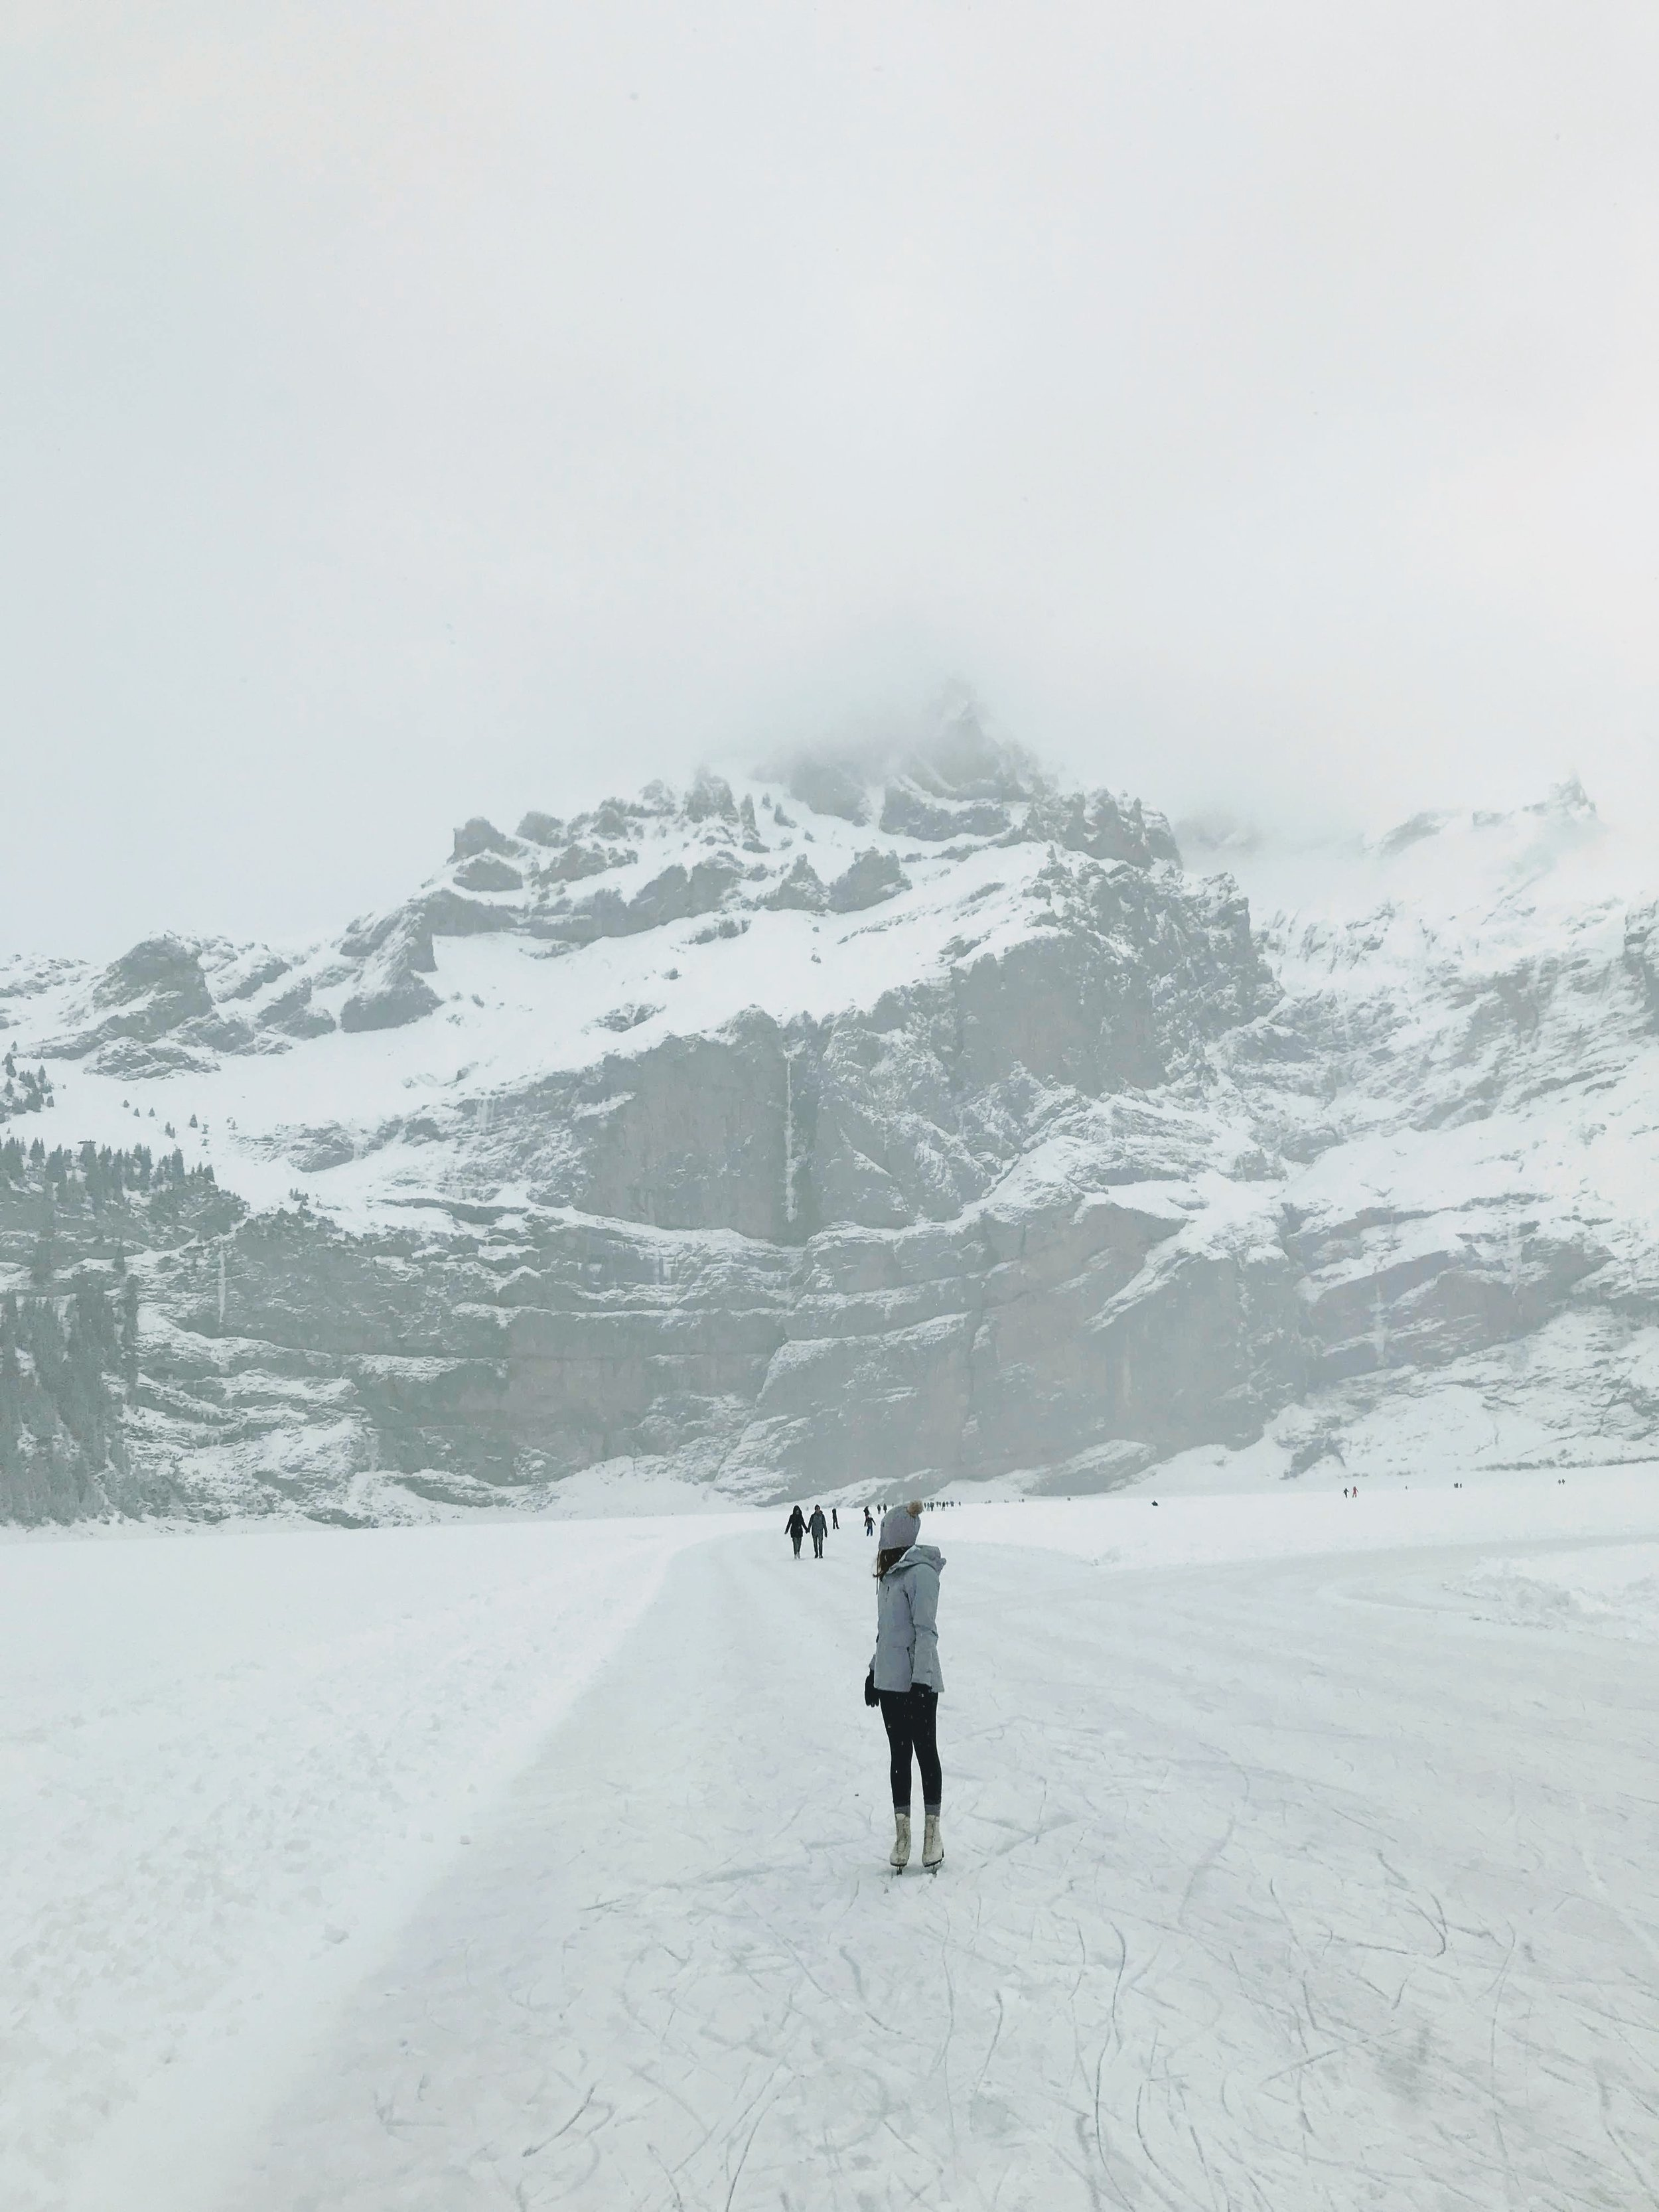 Incredible views on the frozen black ice on Oeschinensee